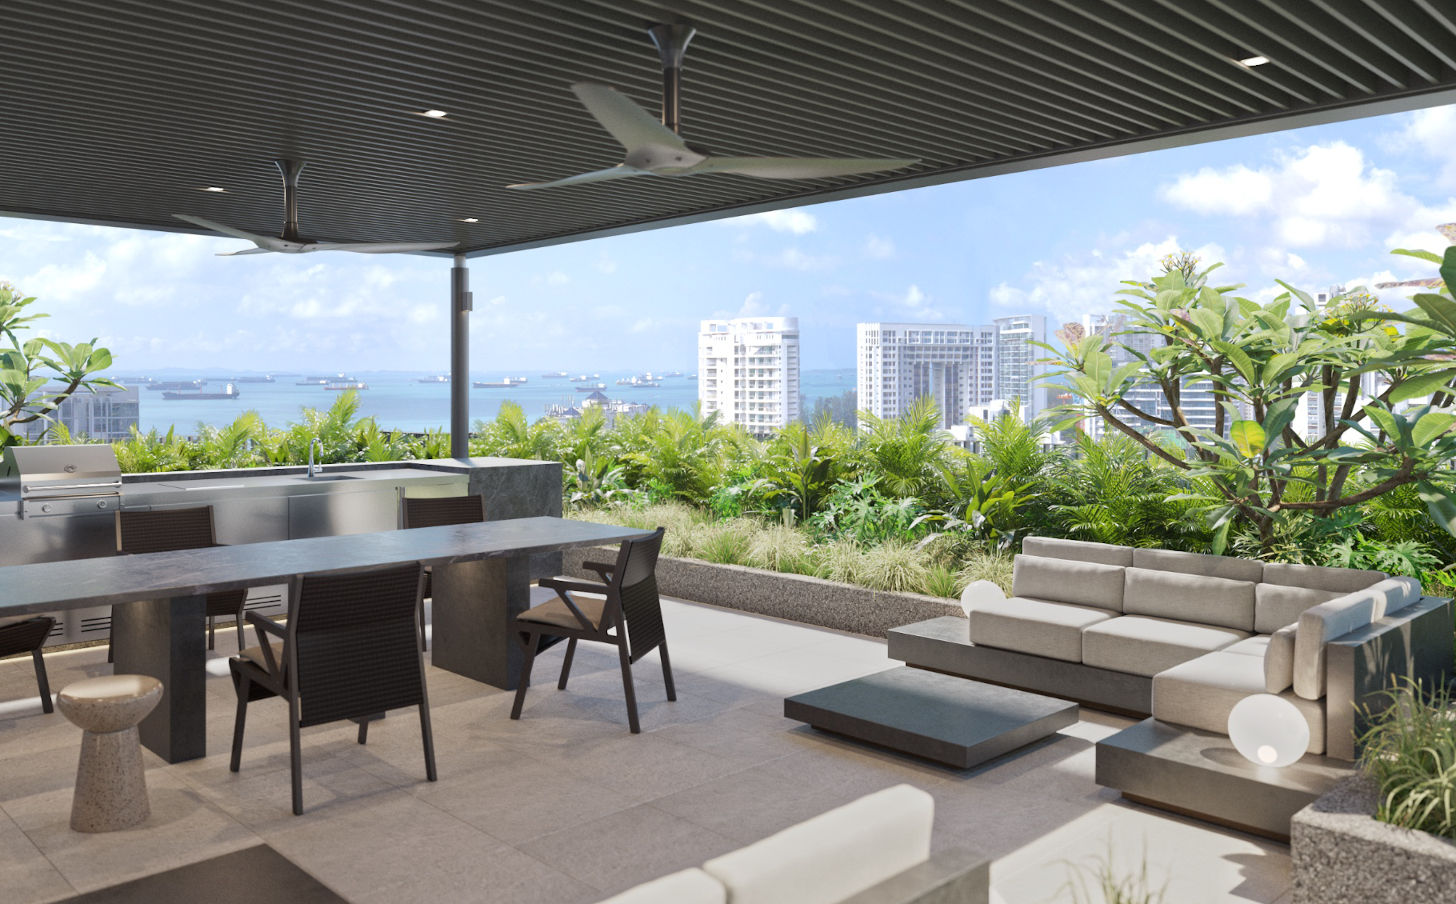 View from Amber Sea Sky Dining Pavilion at the Roof Terrace